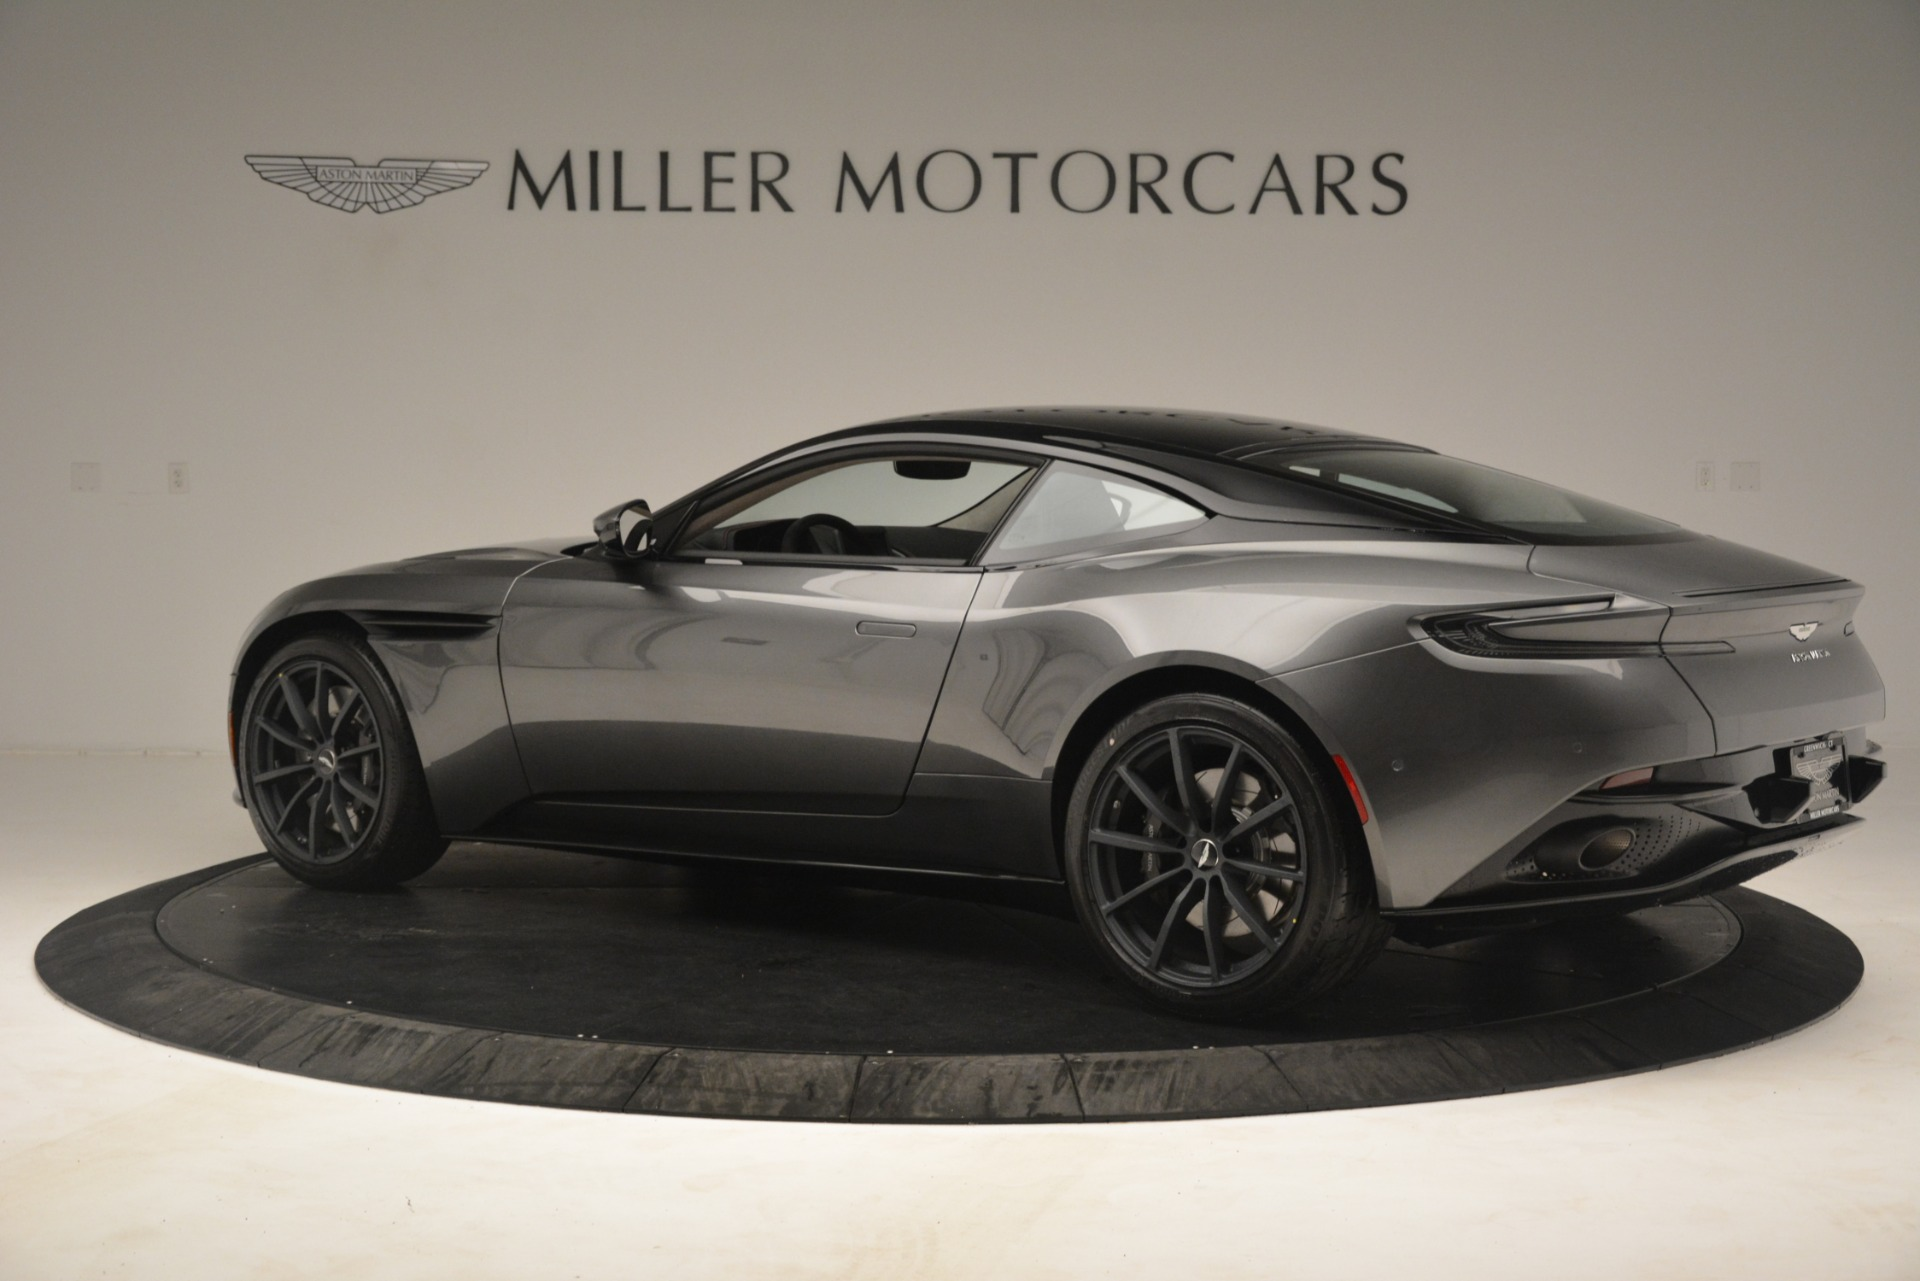 New 2019 Aston Martin DB11 V12 AMR Coupe For Sale In Greenwich, CT. Alfa Romeo of Greenwich, A1366 3123_p4